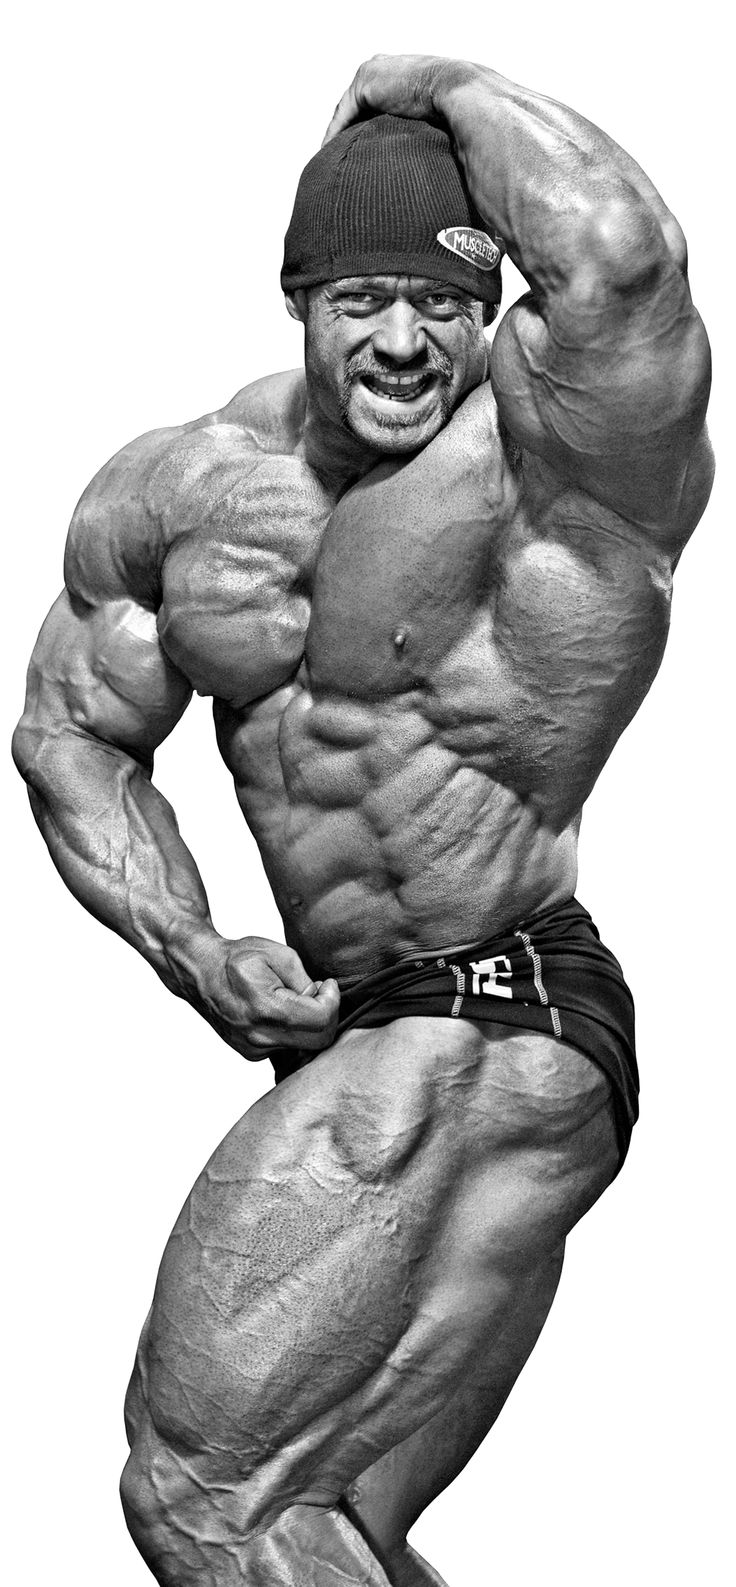 bodybuilding dating The most popular bodybuilding message if you are constantly frustrated with online dating and see no results then do yourself a favor and get rid of those apps.